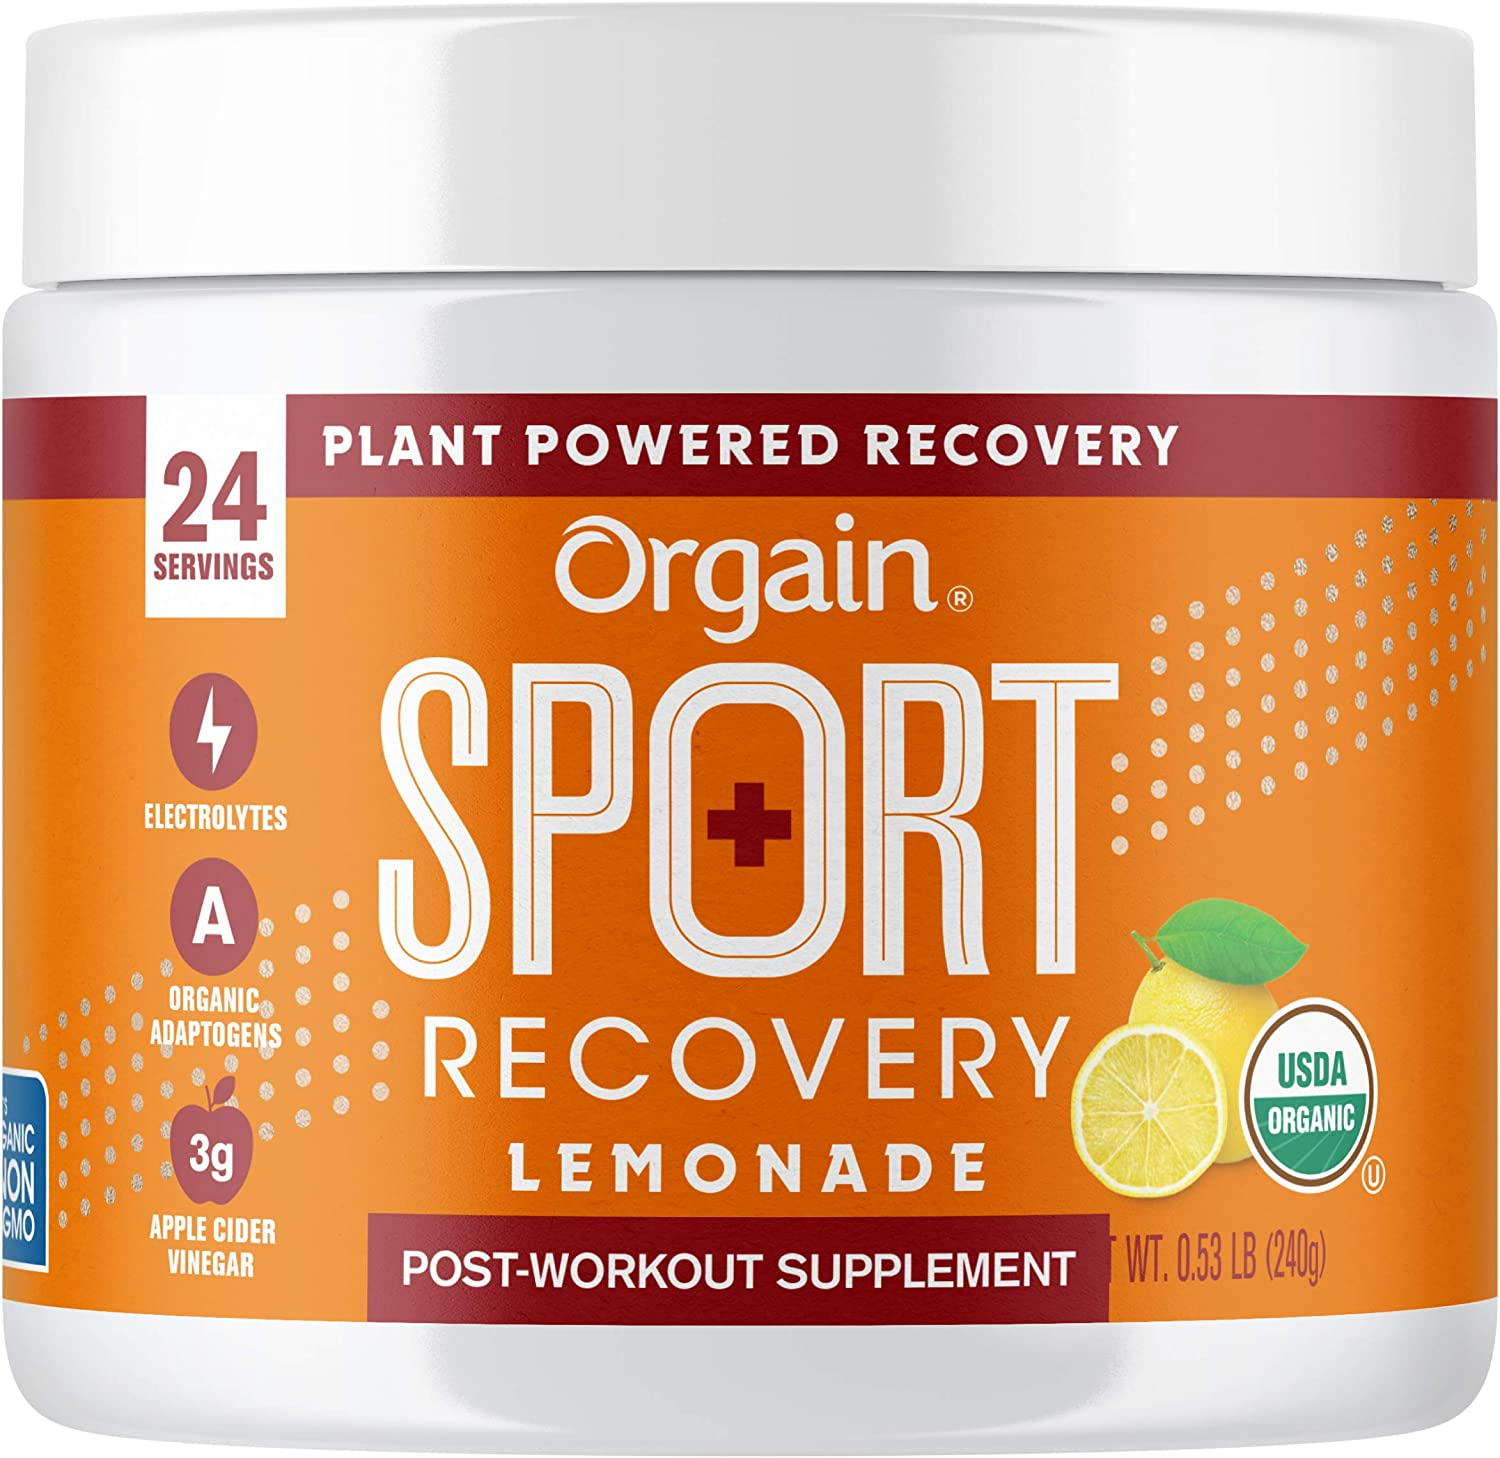 Orgain Lemonade Sport Recovery Post-Workout Powder - Made with Apple Cider Vinegar, Turmeric, Ginger, and Ashwaganda, Gluten Free, Non-GMO, Vegan, Dairy and Soy Free - 0.53 lbs